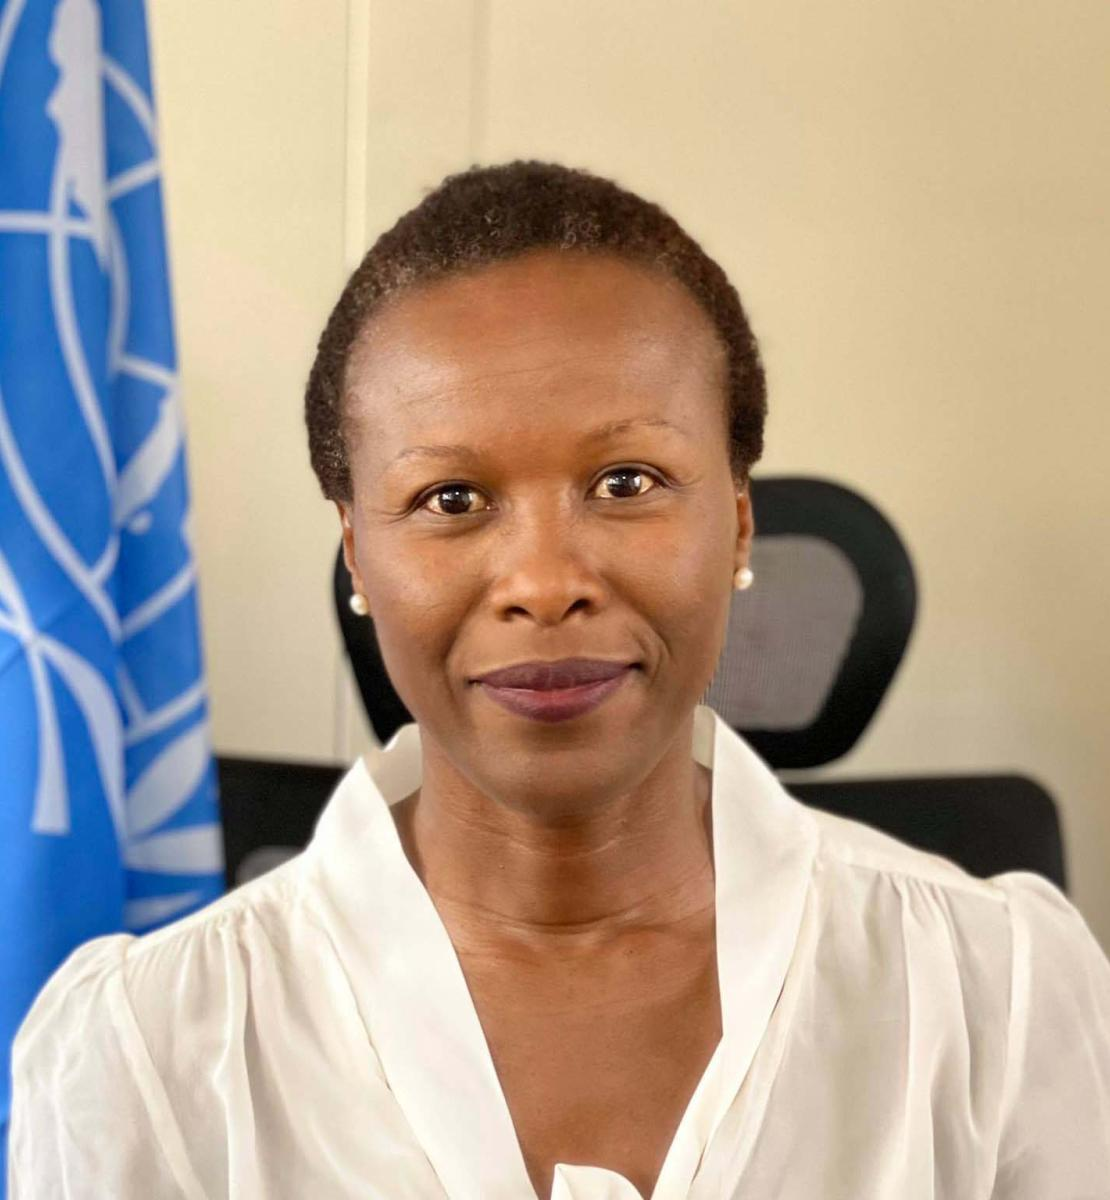 Official photo of the newly appointed Resident Coordinator for Uganda, Susan Ngongi Namondo.